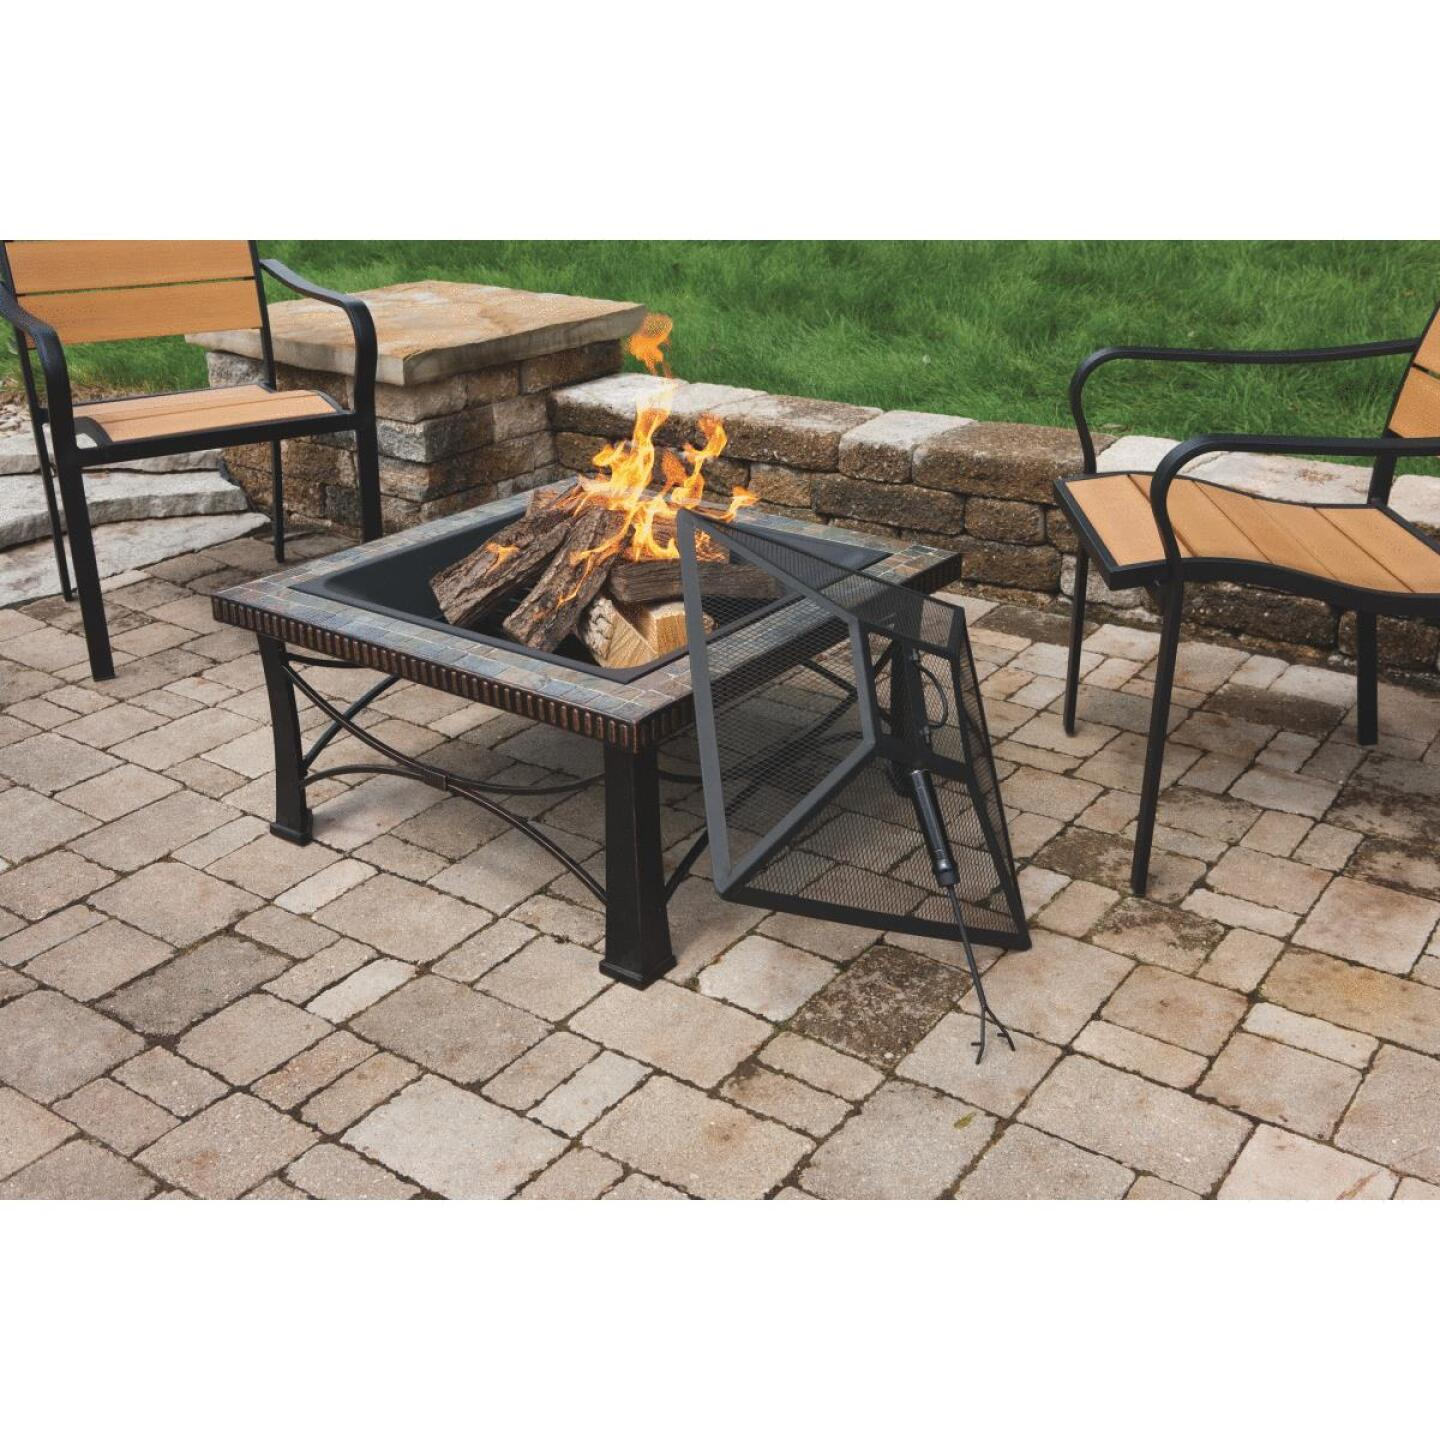 Outdoor Expressions 30 In. Slate Square Steel Fire Pit Image 3